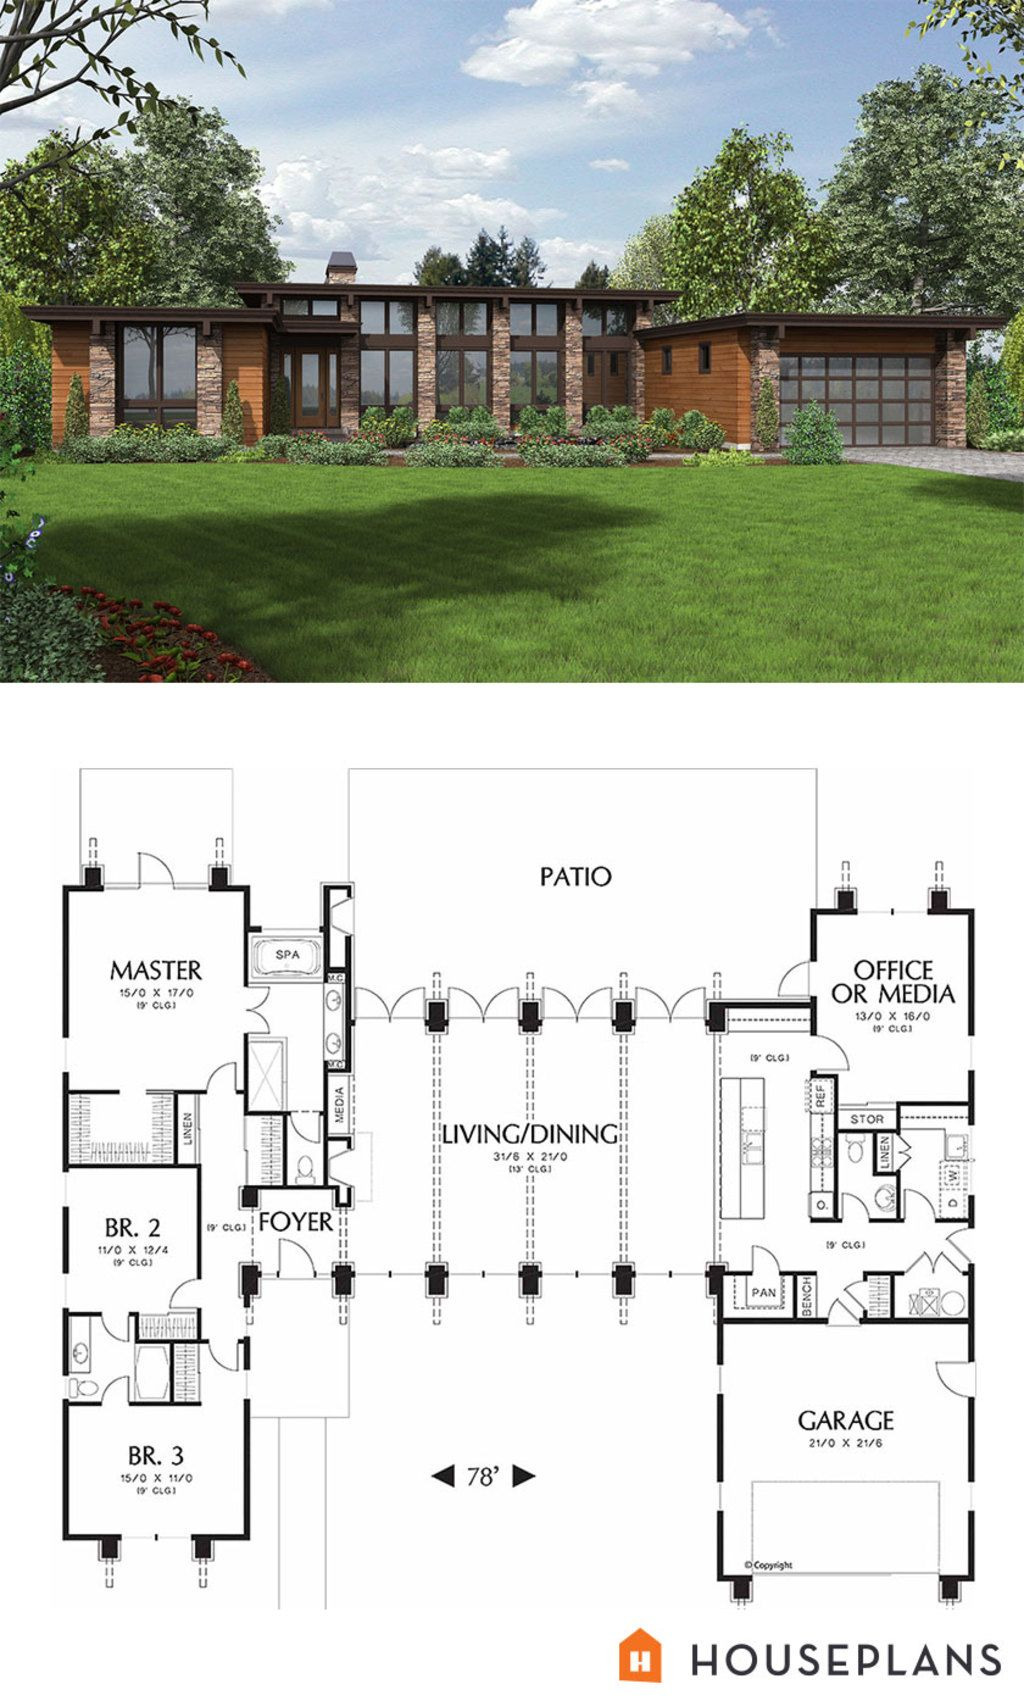 House and Floor Plans Fresh Modern Style House Plan 3 Beds 2 5 Baths 2557 Sq Ft Plan